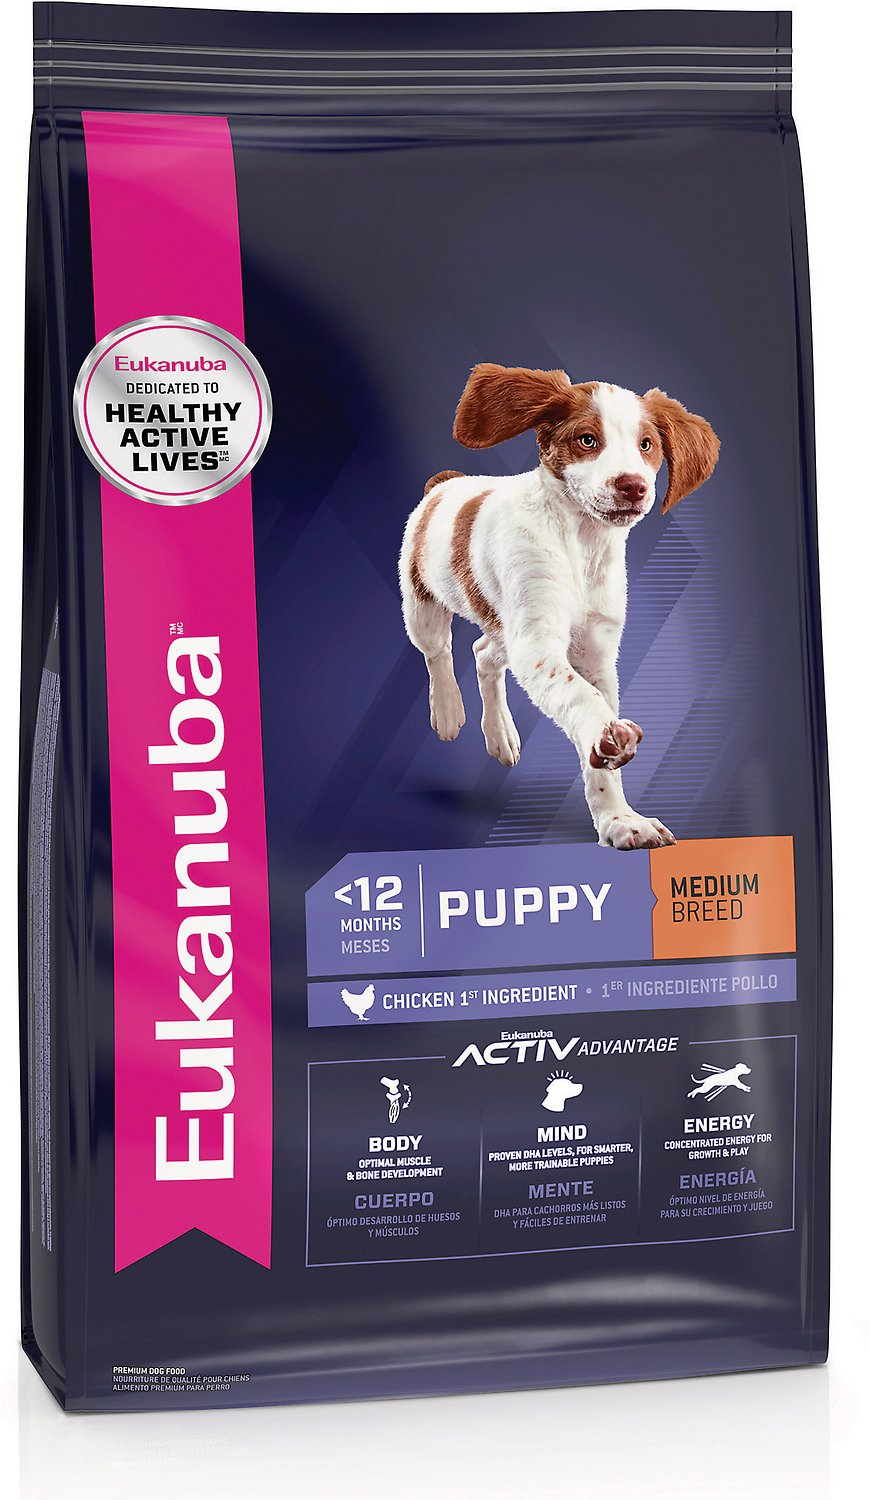 Eukanuba Puppy Food >> Eukanuba Puppy Chicken Formula Dry Dog Food, 33-lb bag - Chewy.com